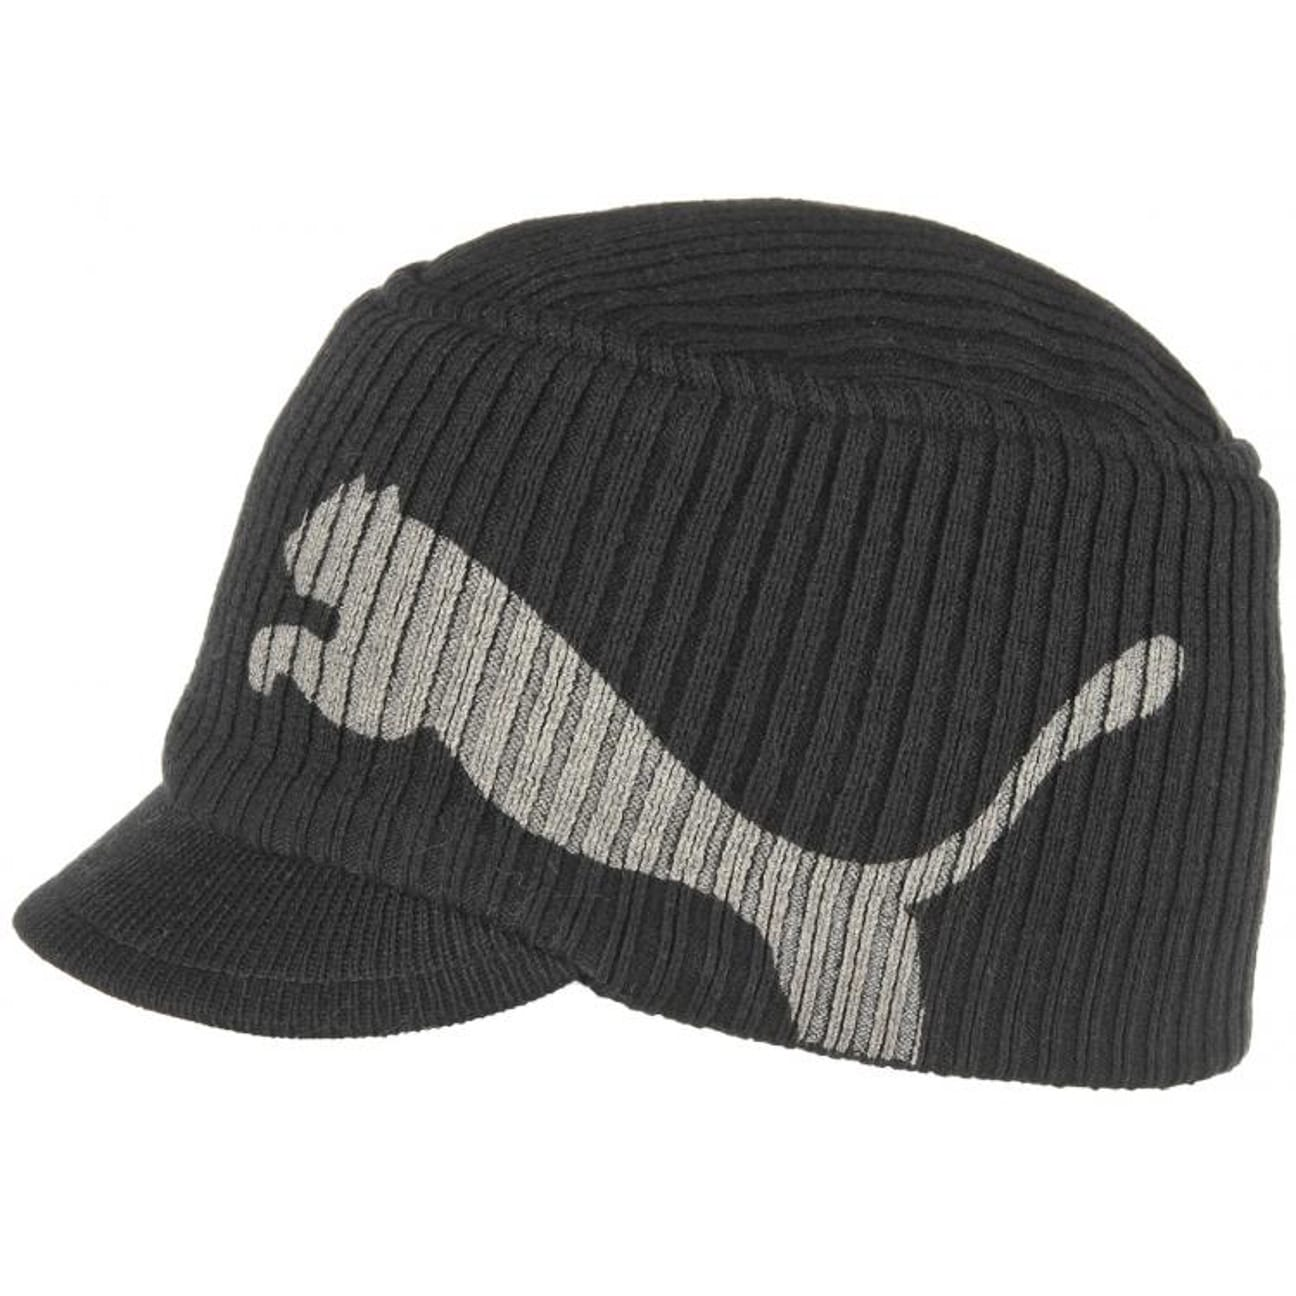 Bonnet Urban Tribe Hat by PUMA , noir 1